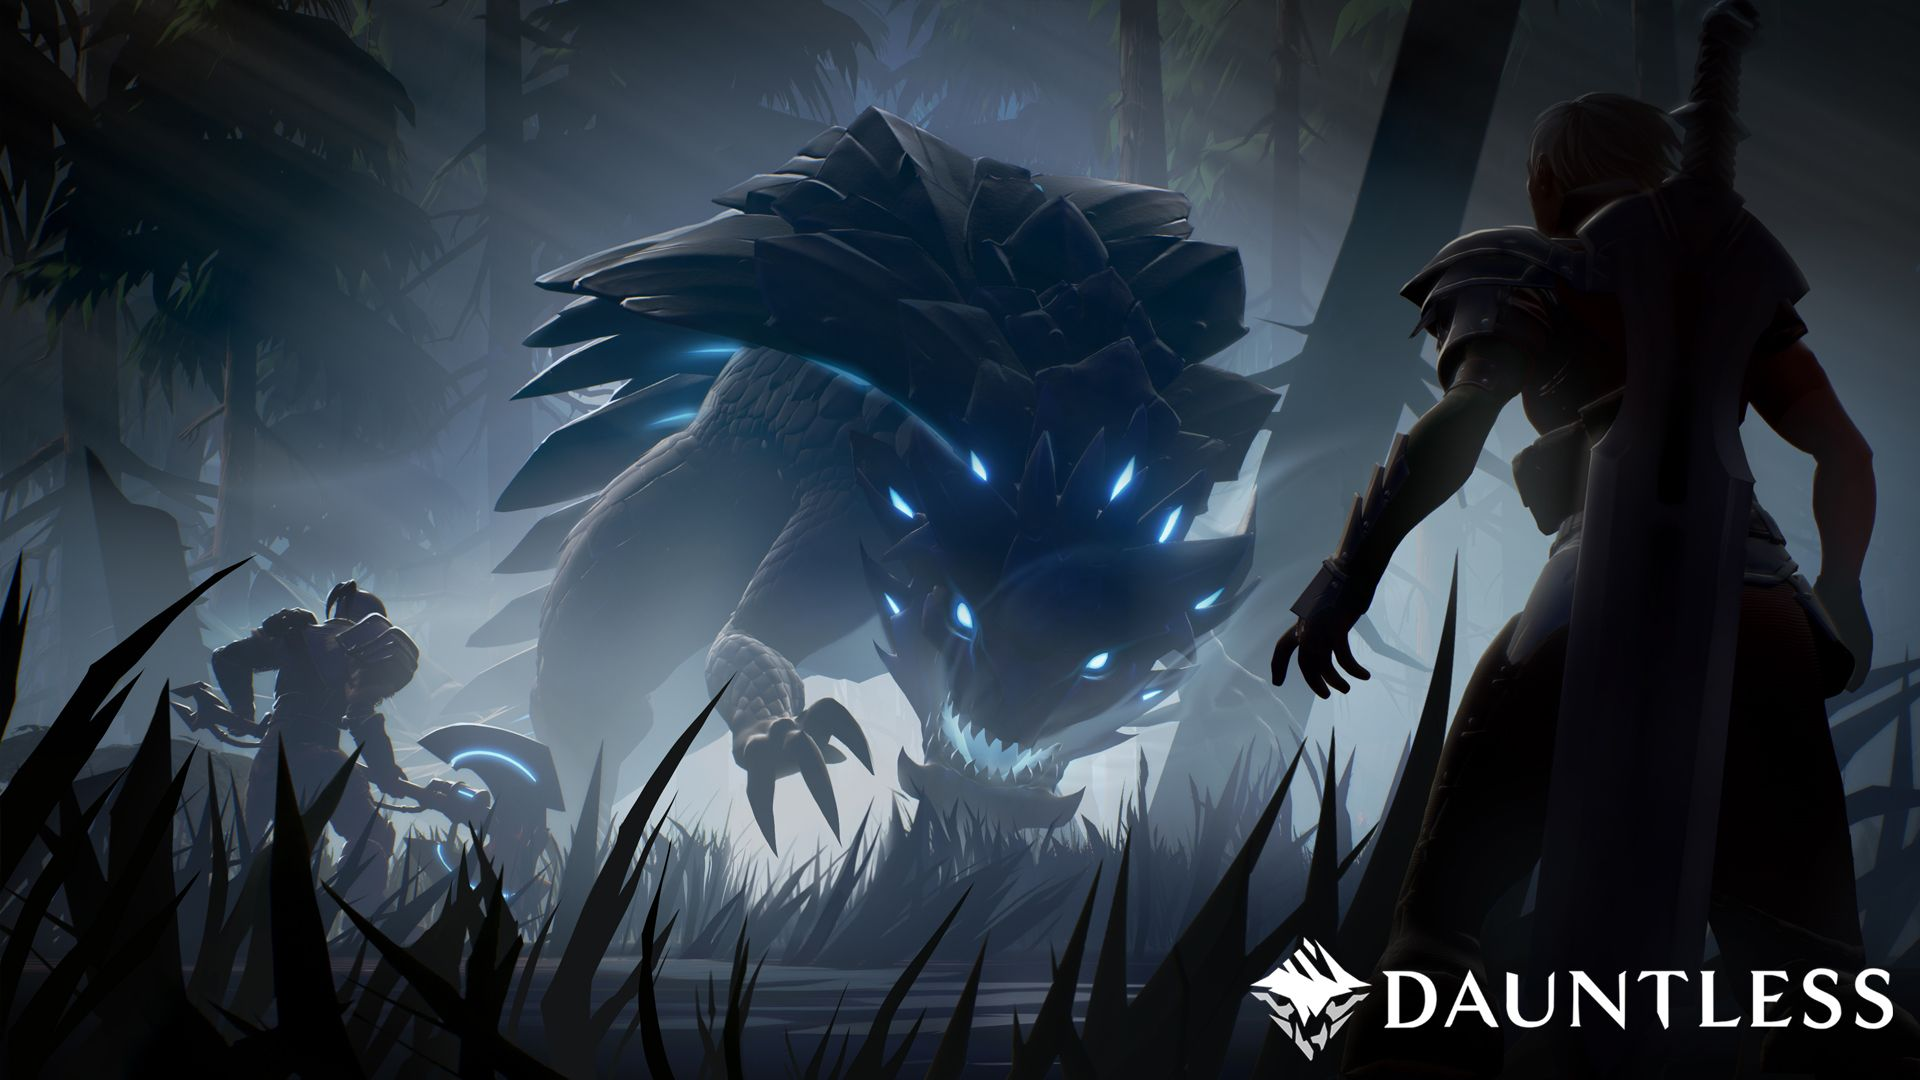 Dauntless Pangar